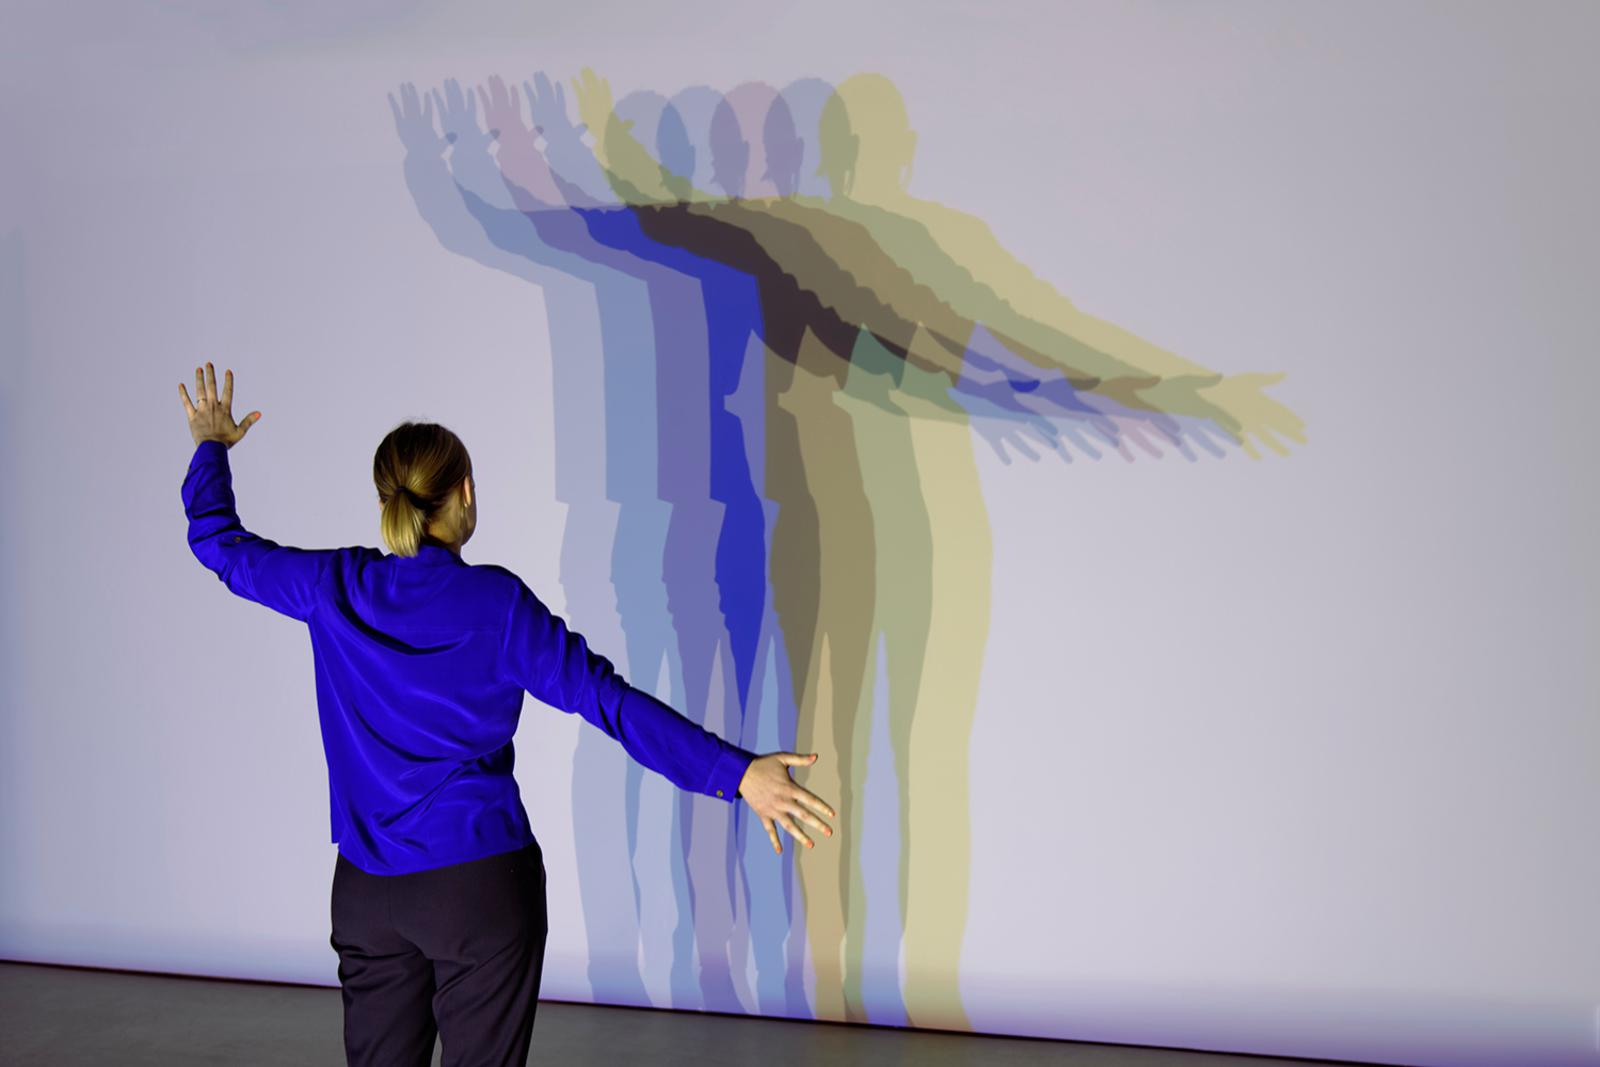 Your Uncertain Shadow Artwork Studio Olafur Eliasson